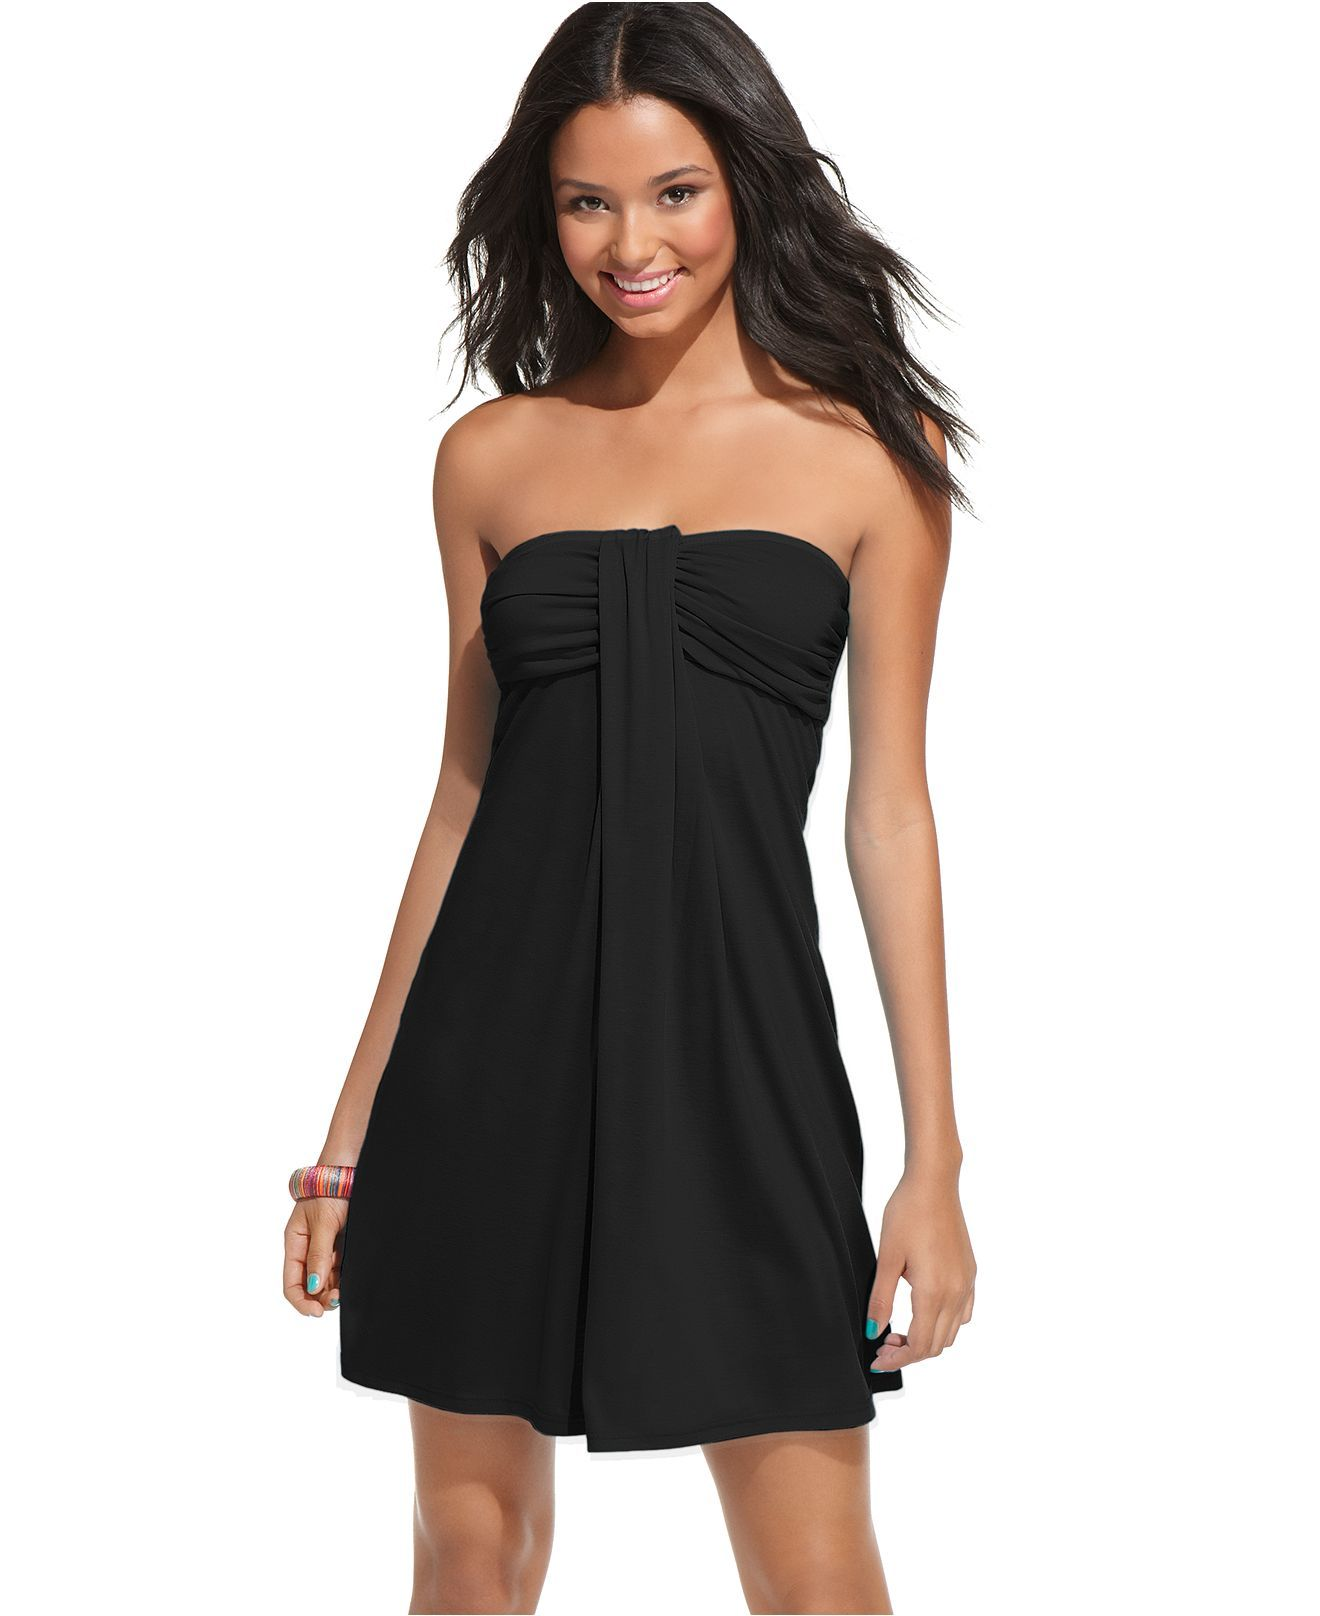 4a8ddbf4d4 Hula Honey Cover Up, Strapless Bandeau Ruched Empire A Line Dress - Womens  Swim - Macy's